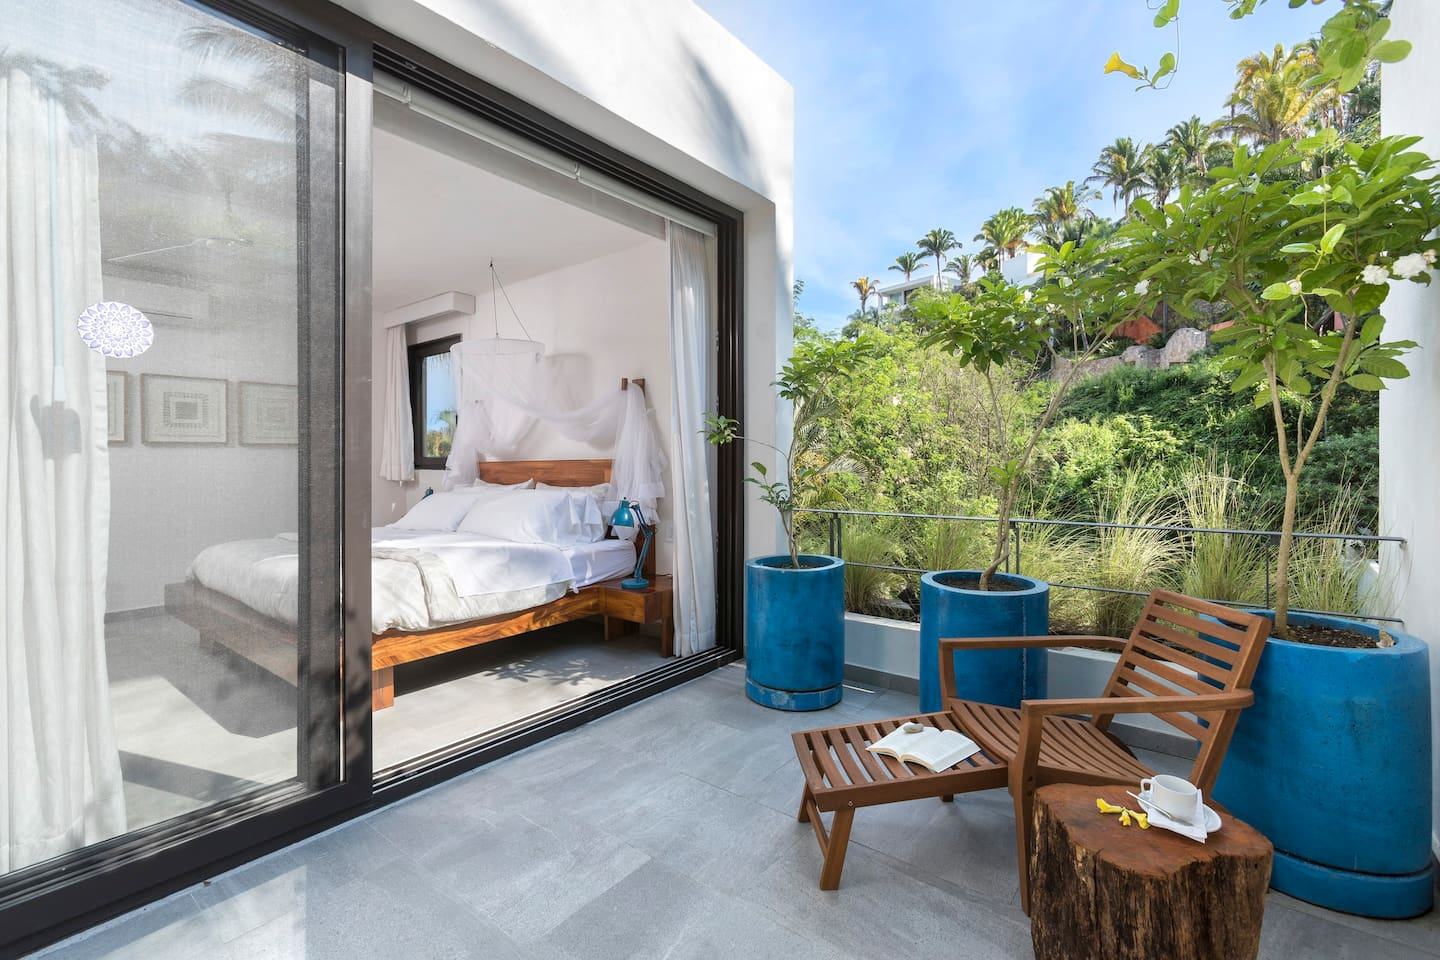 Top Suite with private terrace area, overlooking other million dollar homes, and jungle, trees, birds.